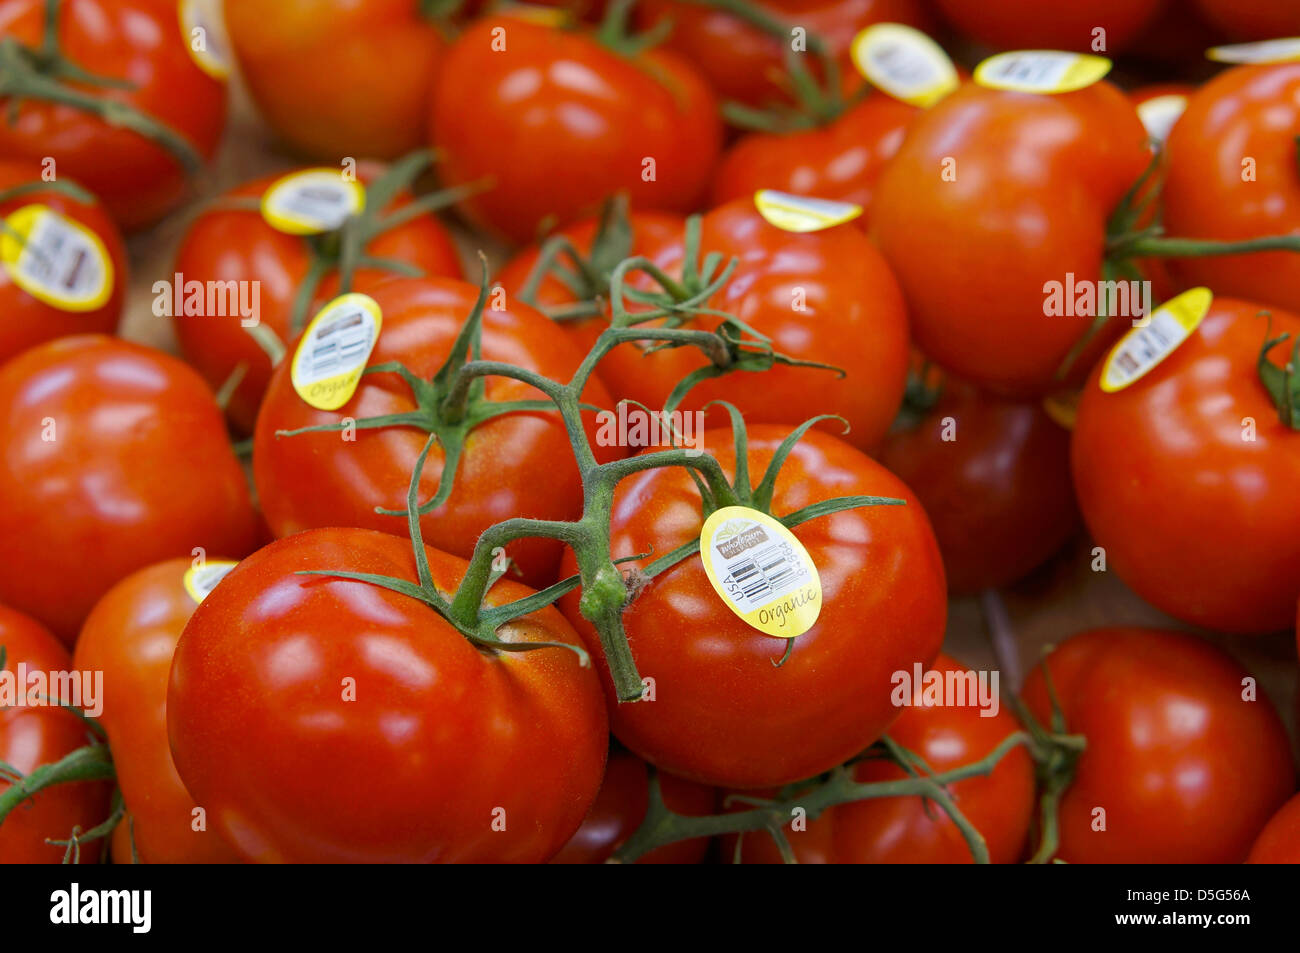 Organic Vine Tomatoes with Labels - Stock Image